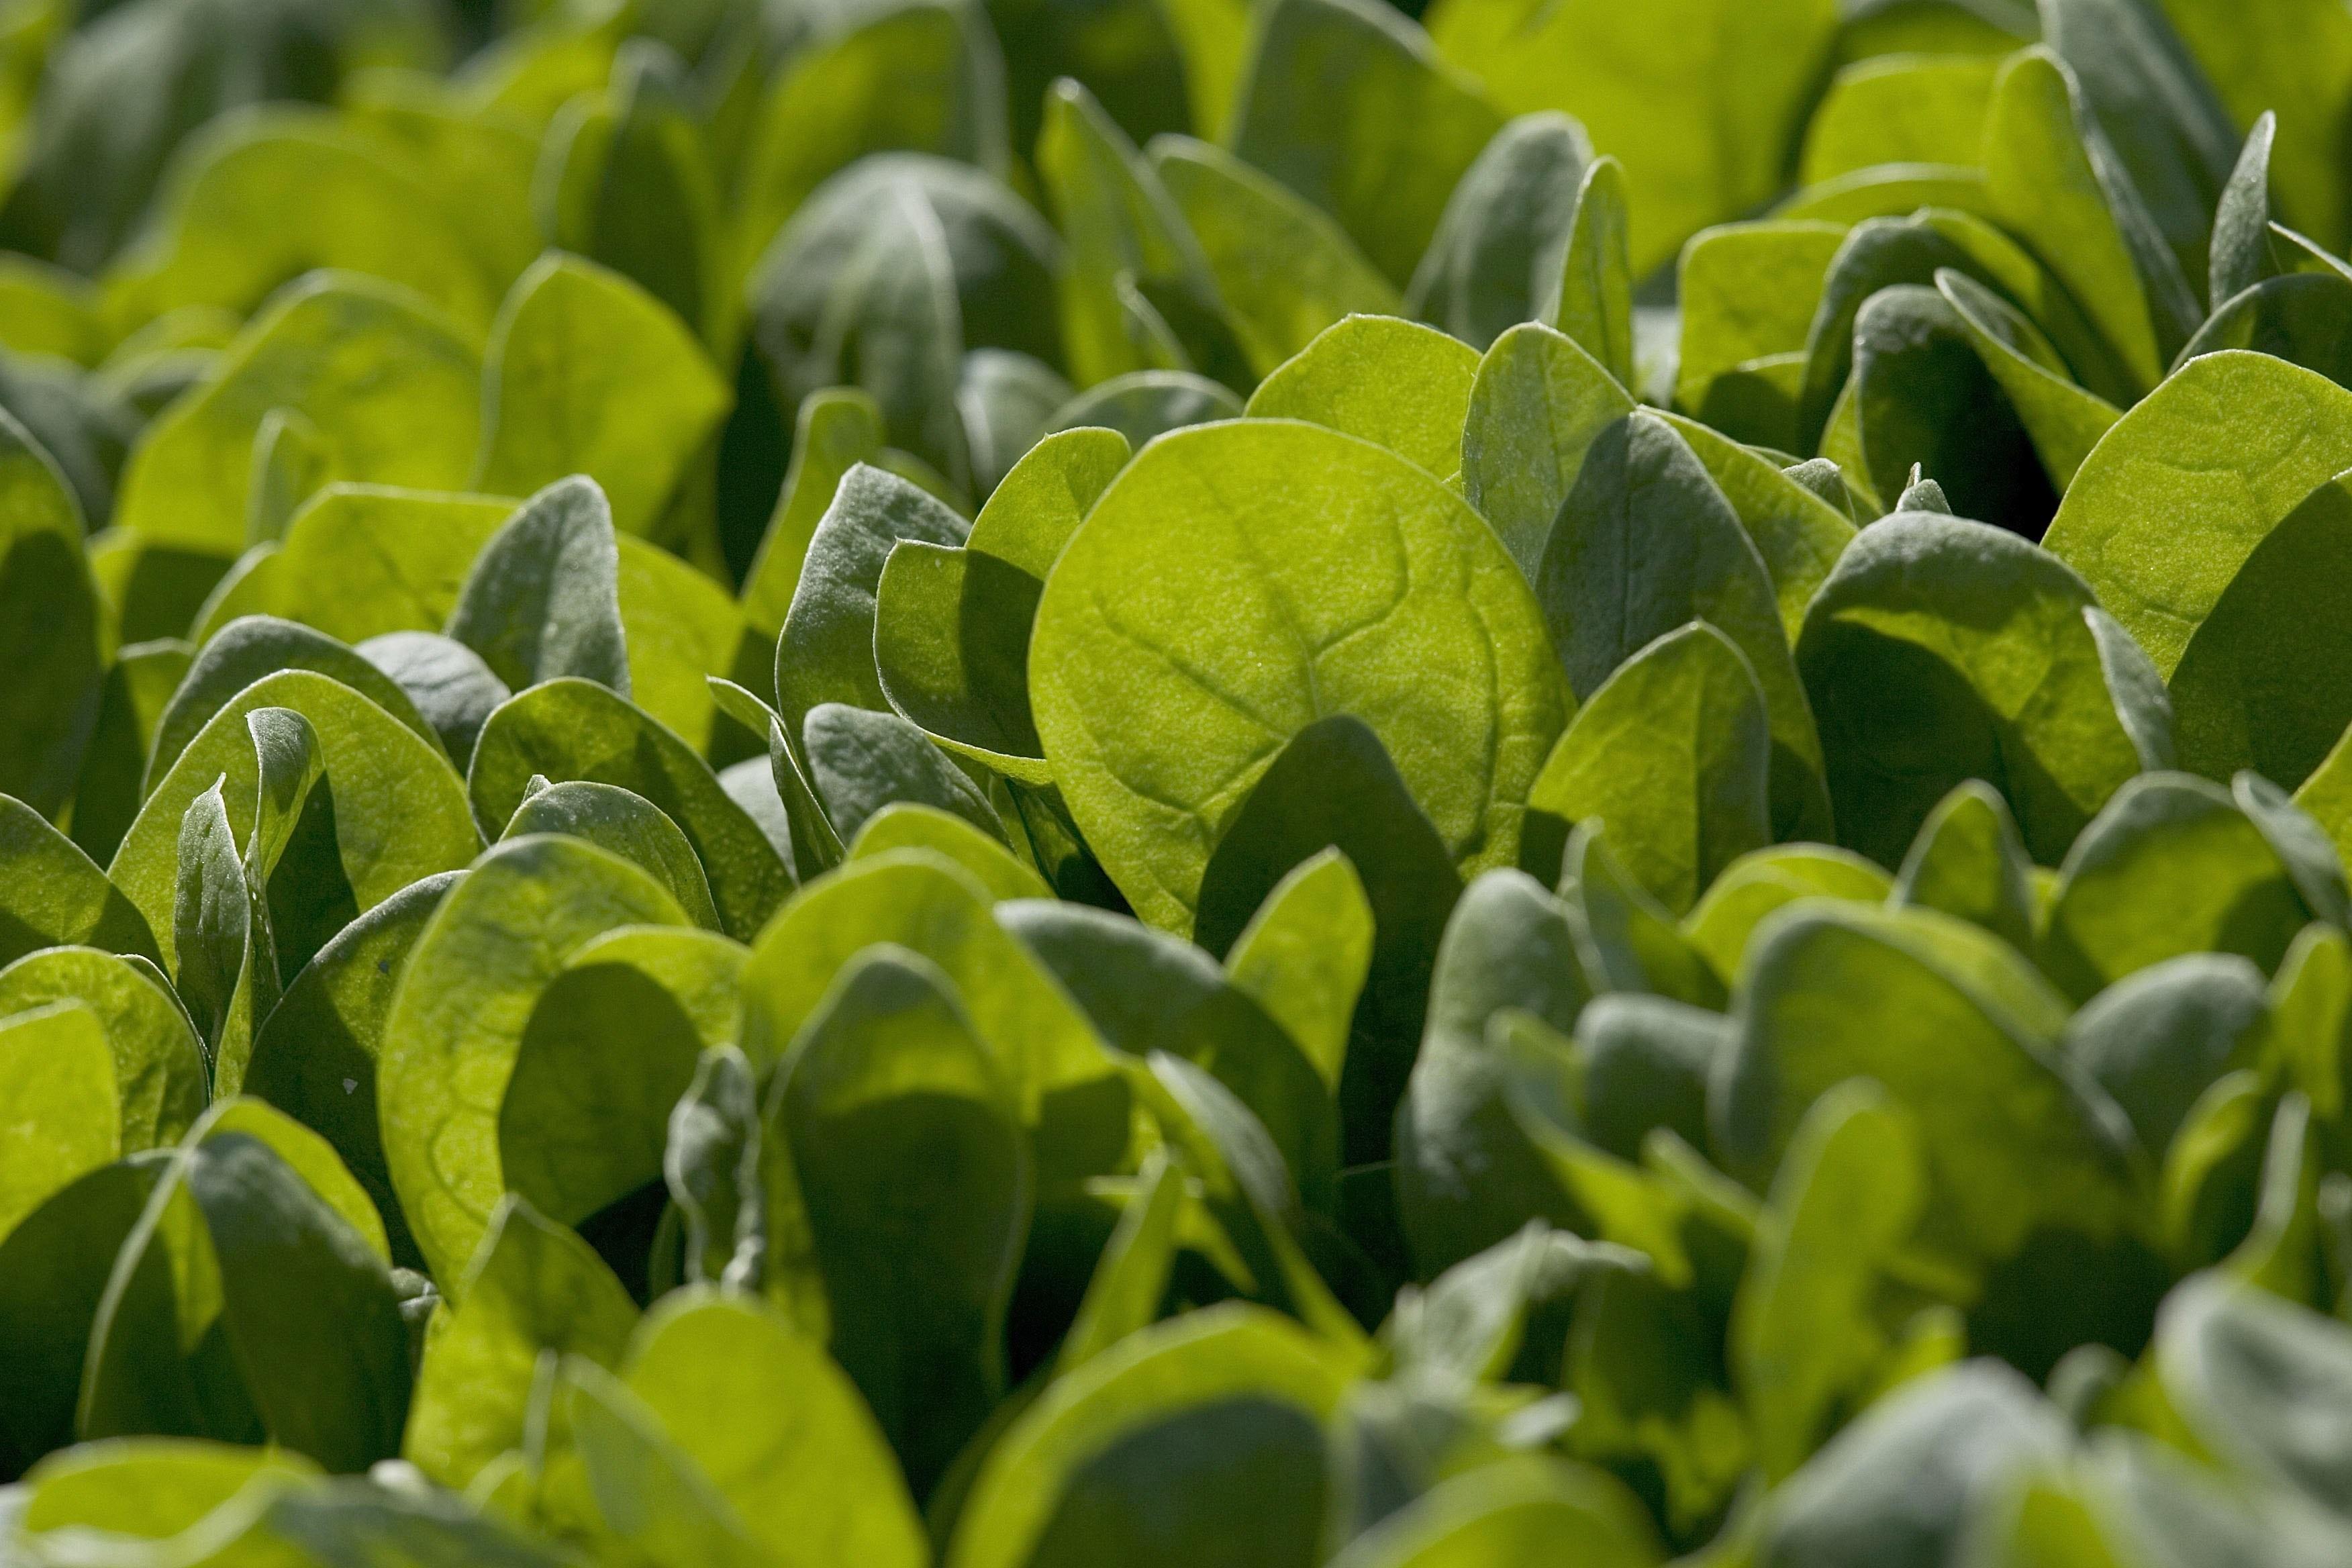 Spinach Growers Tally Losses As E. Coli Investigation Continues